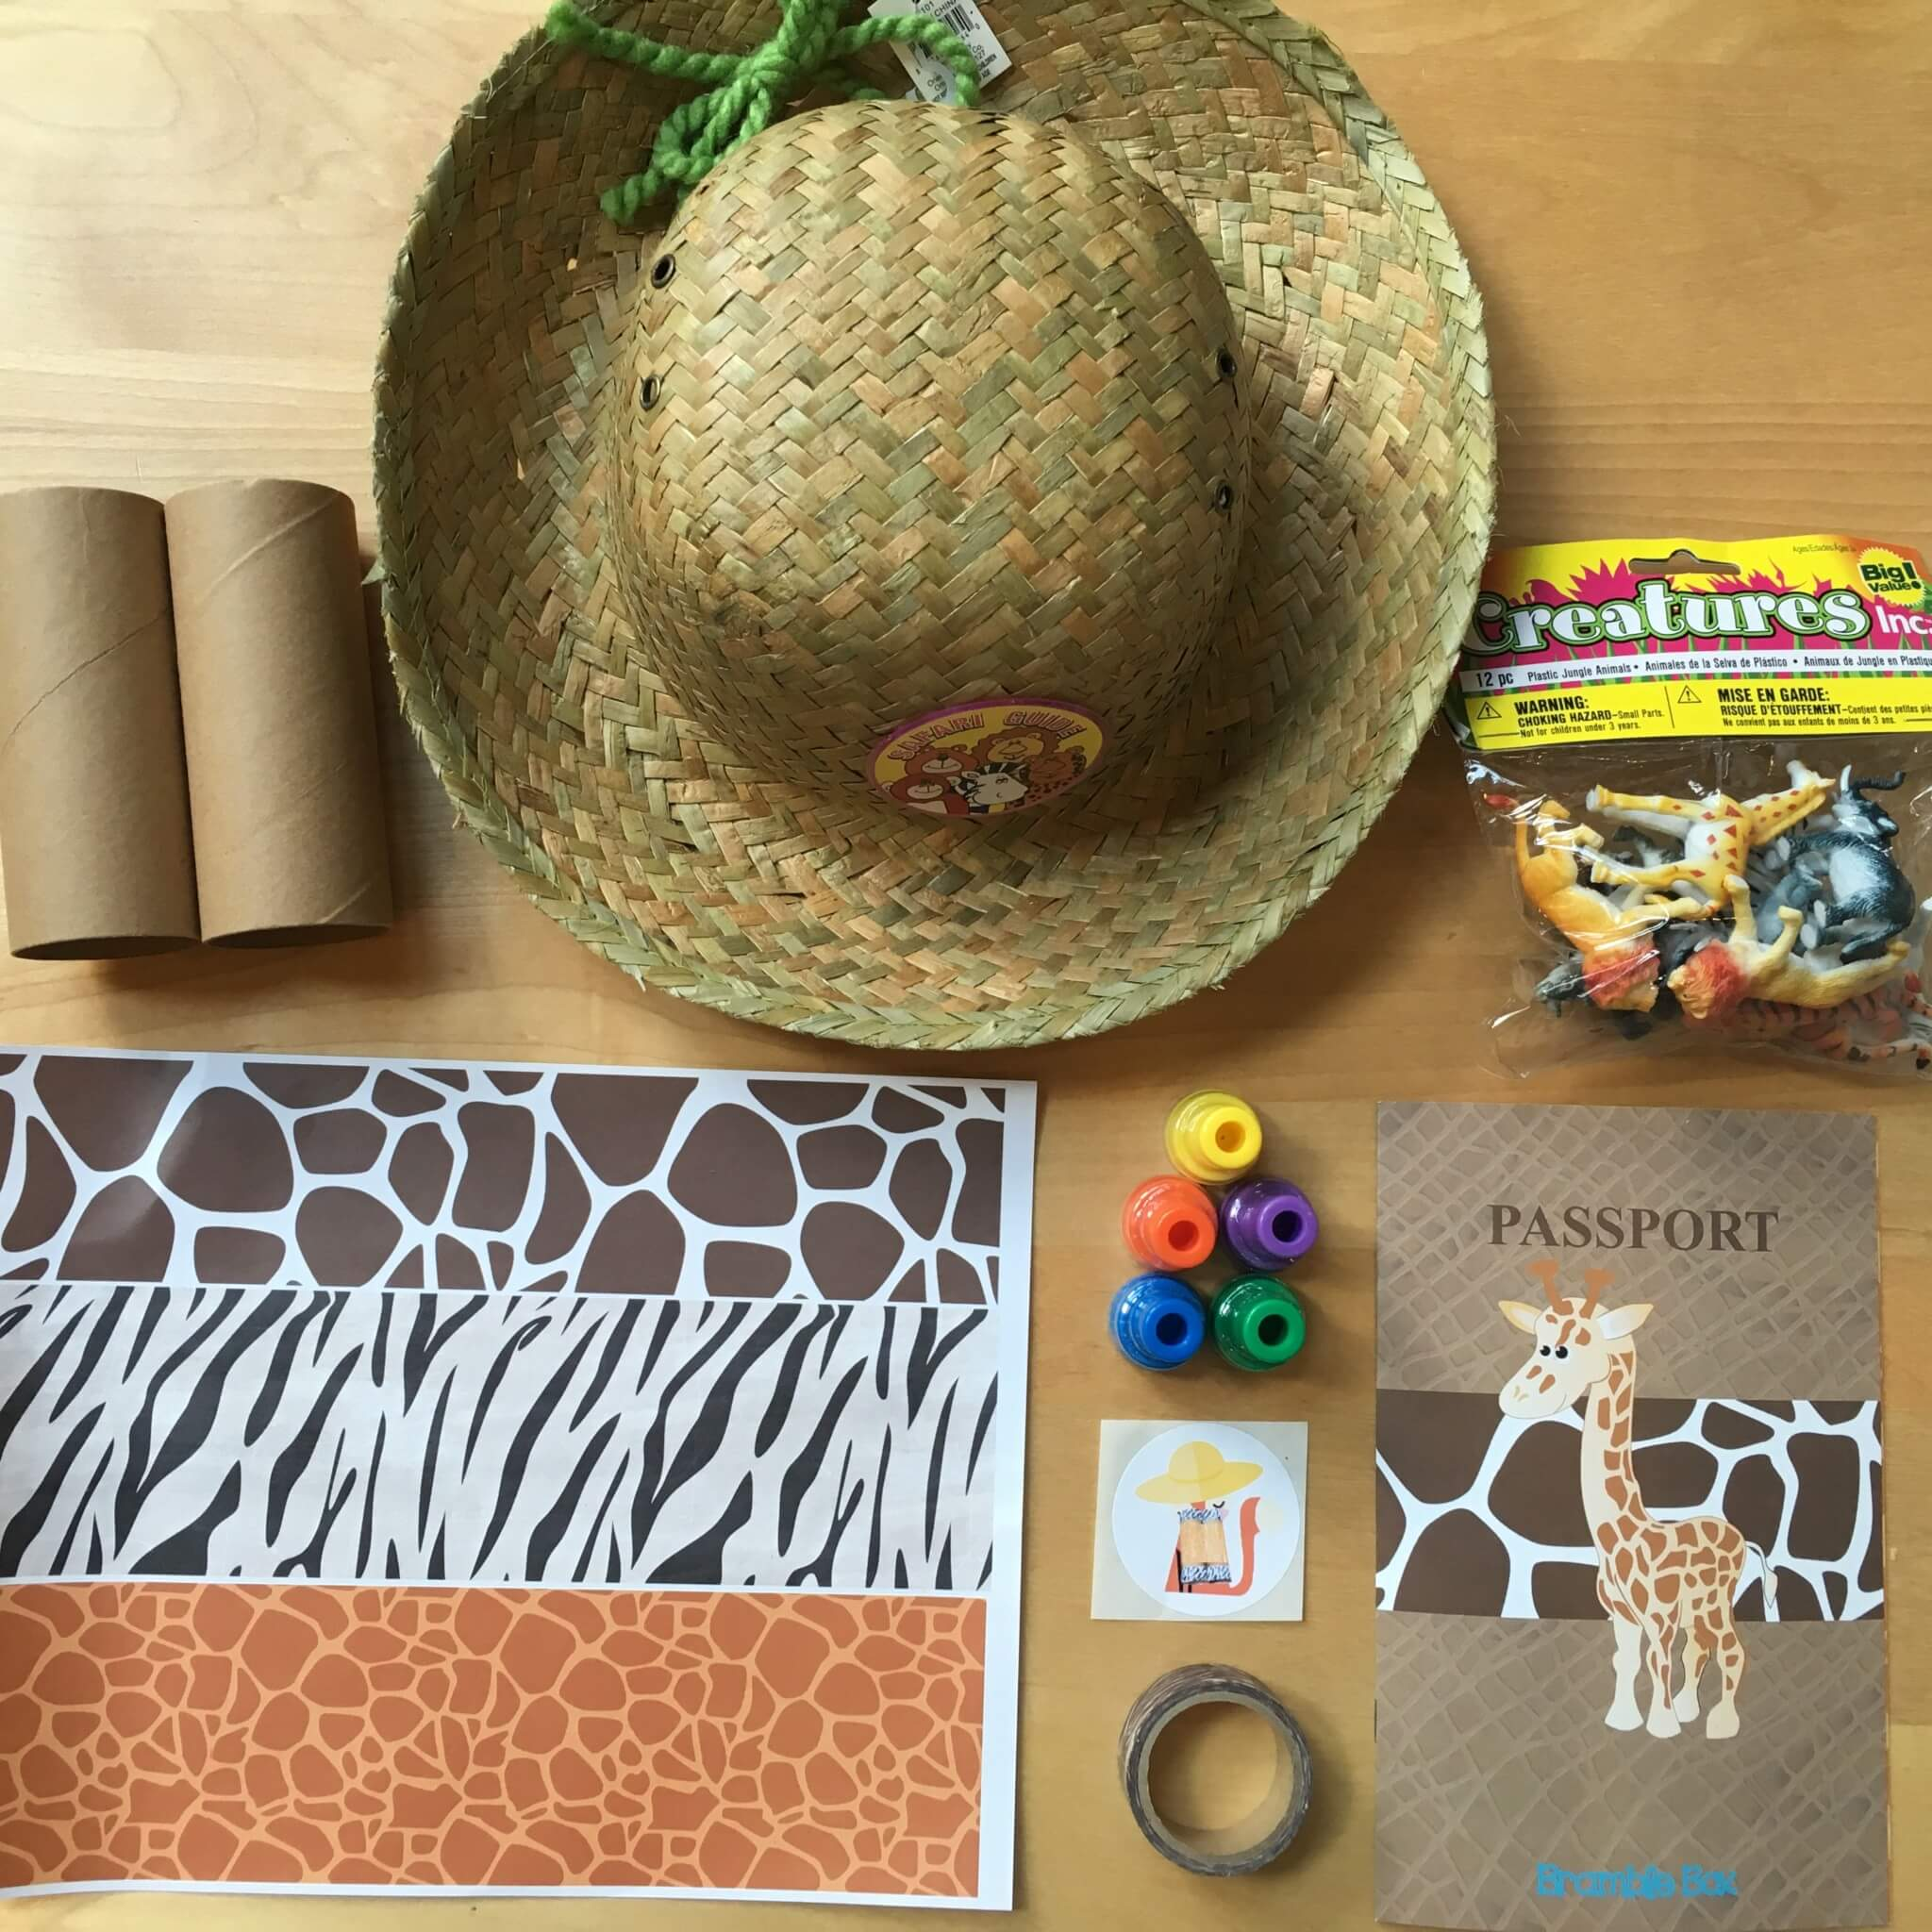 Bramble Box August 2016 Subscription Box Review + Coupon